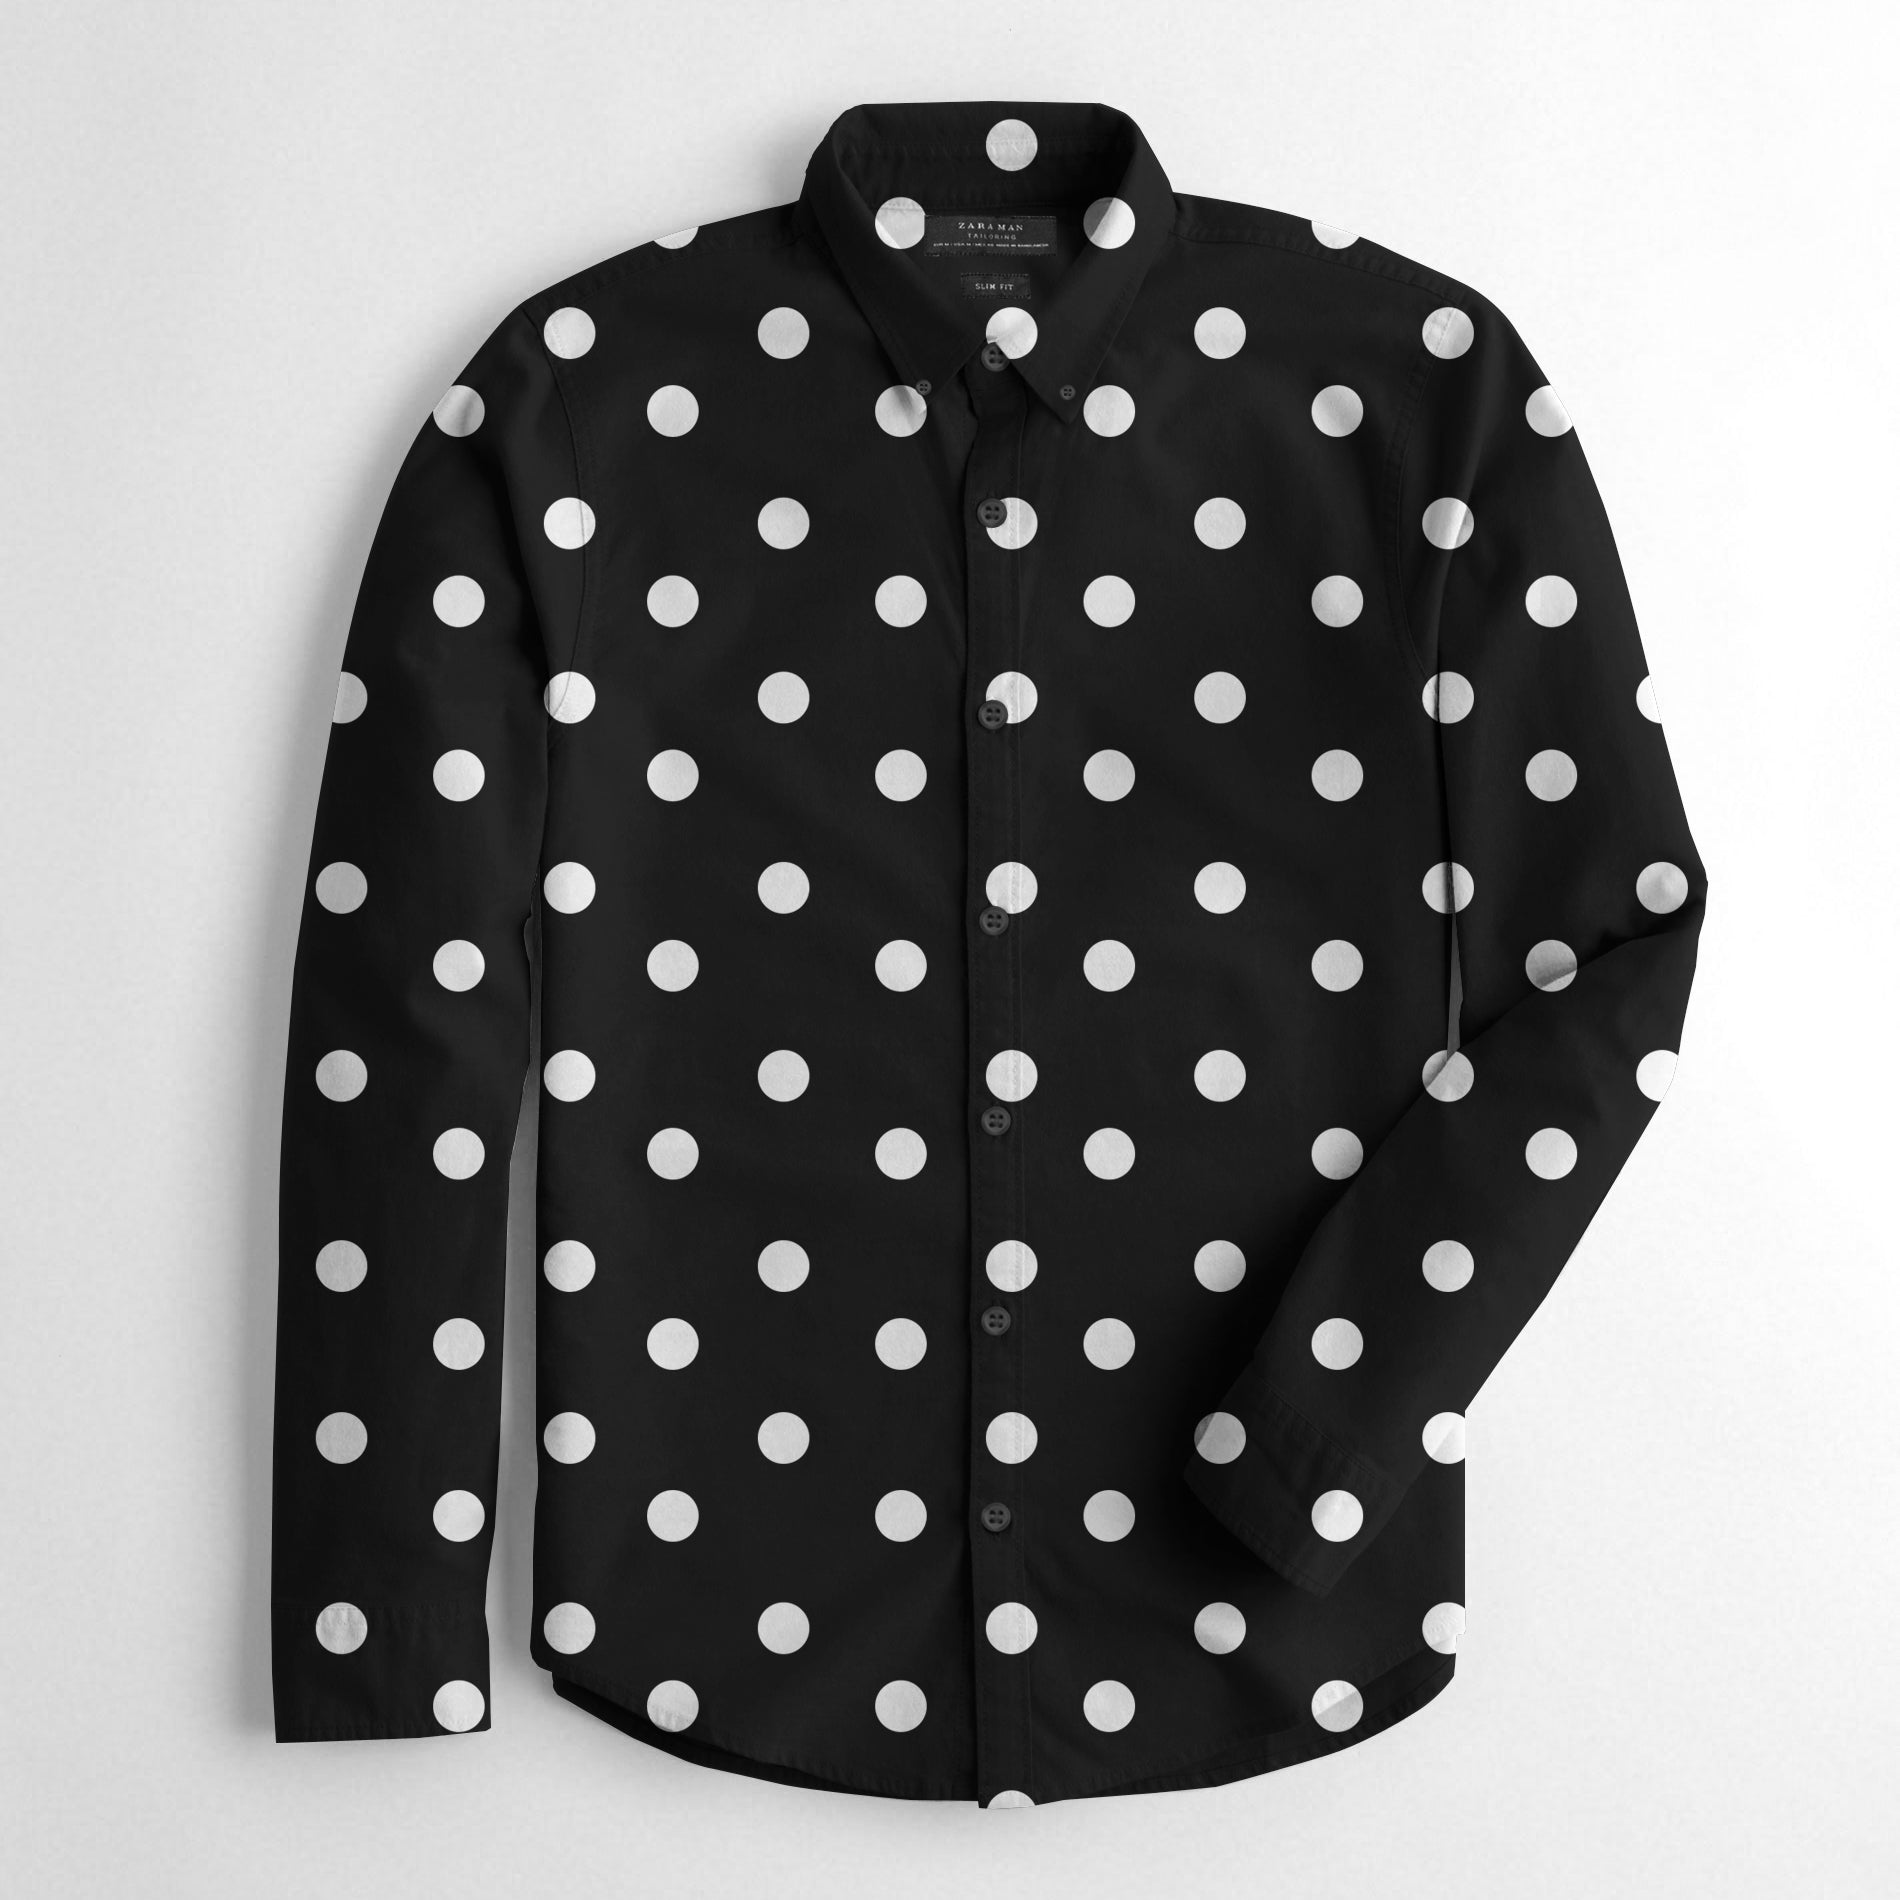 ZM Premium Slim Fit Casual Shirt For Men-Black & White Dotted-BE12527